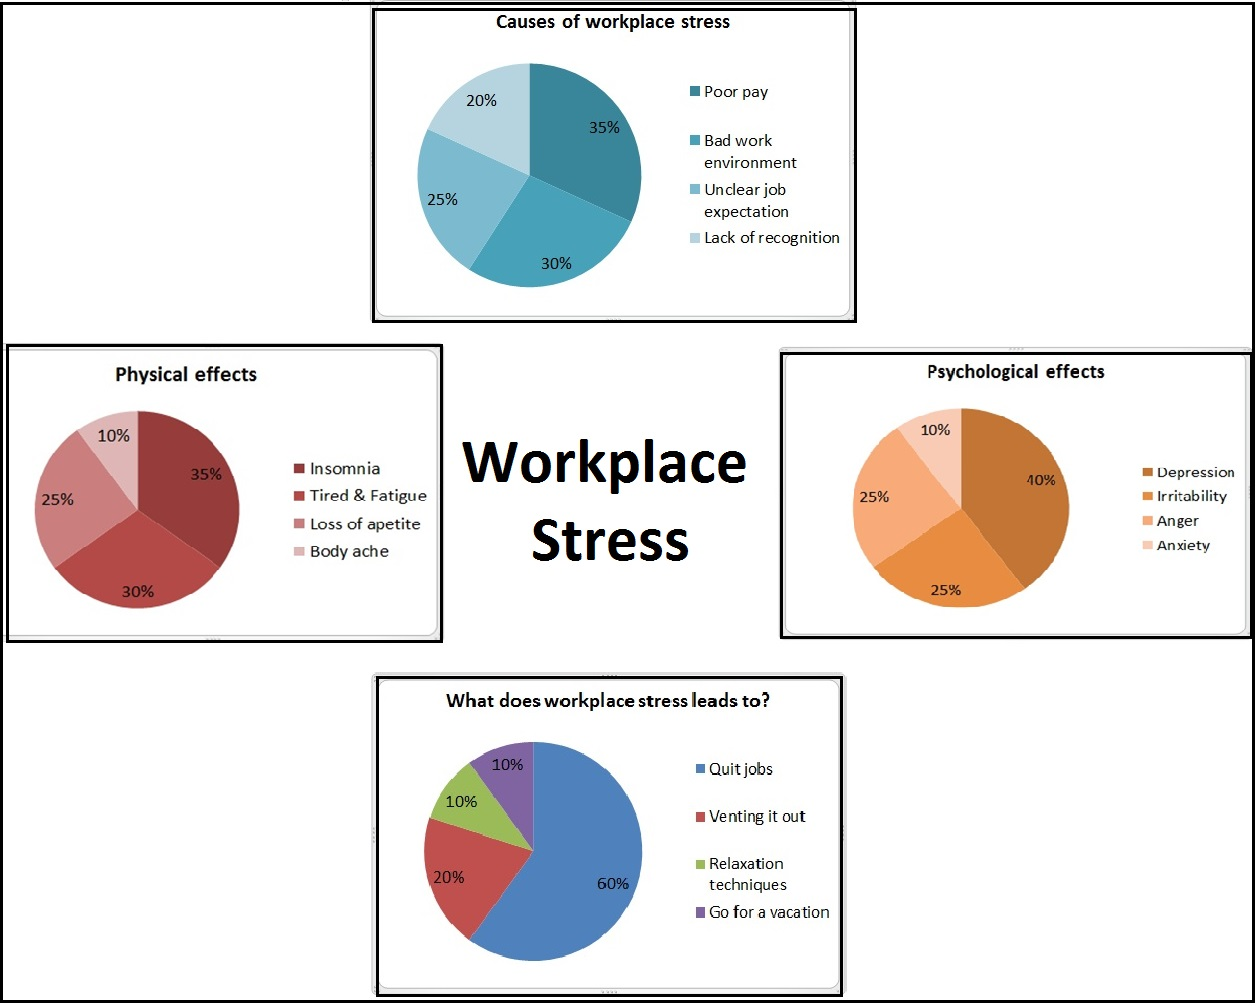 News: Workplace stress: 60% of employees plan to quit jobs, a study